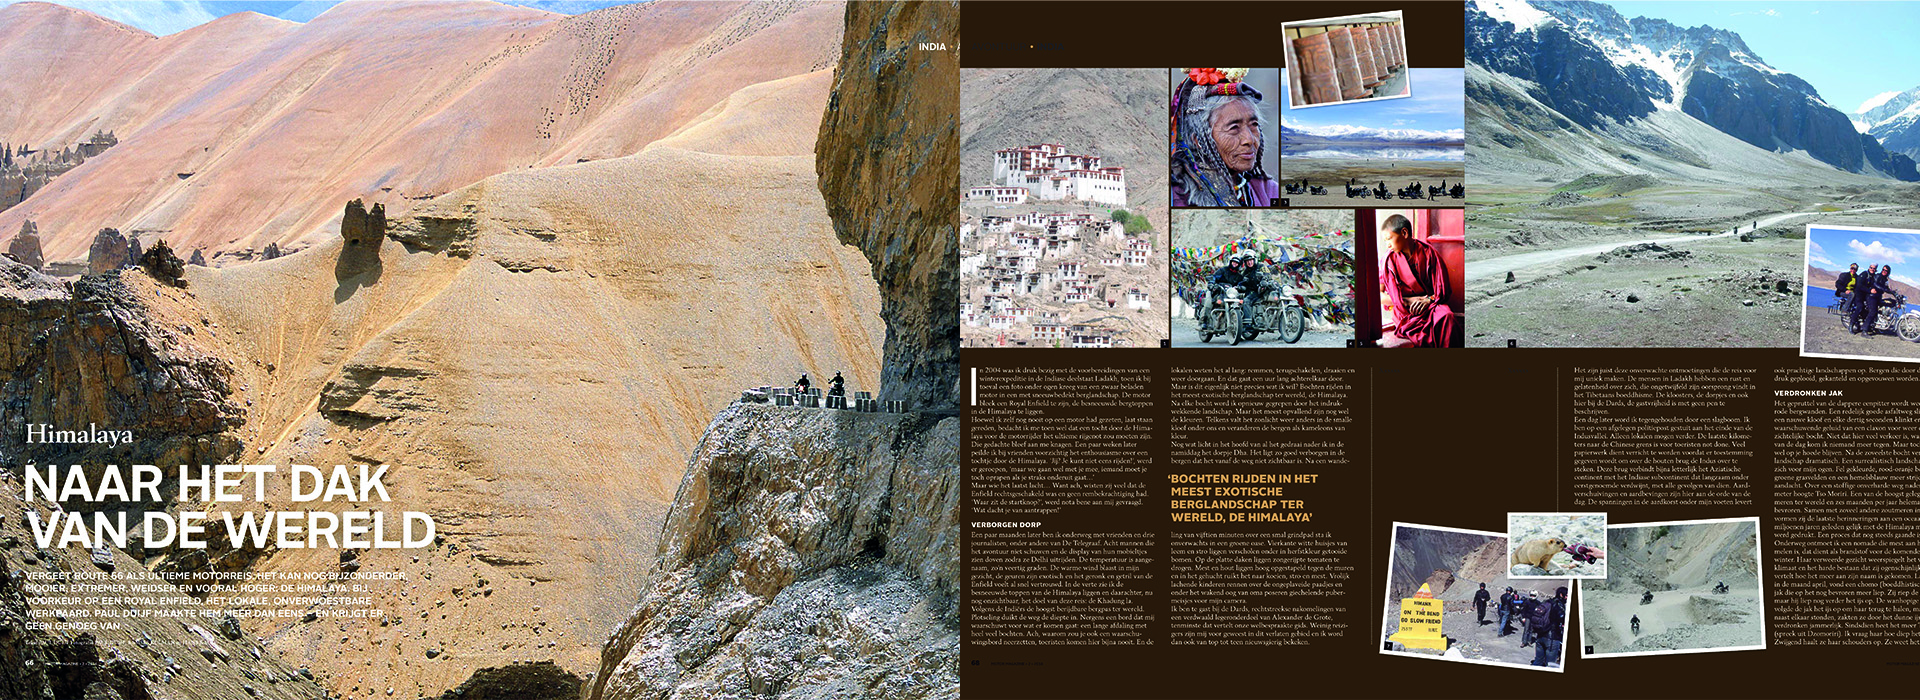 Publicatie motrreis Himalaya in Motor magazine van 2014 door Paul Duijf van Travel 2 Explore